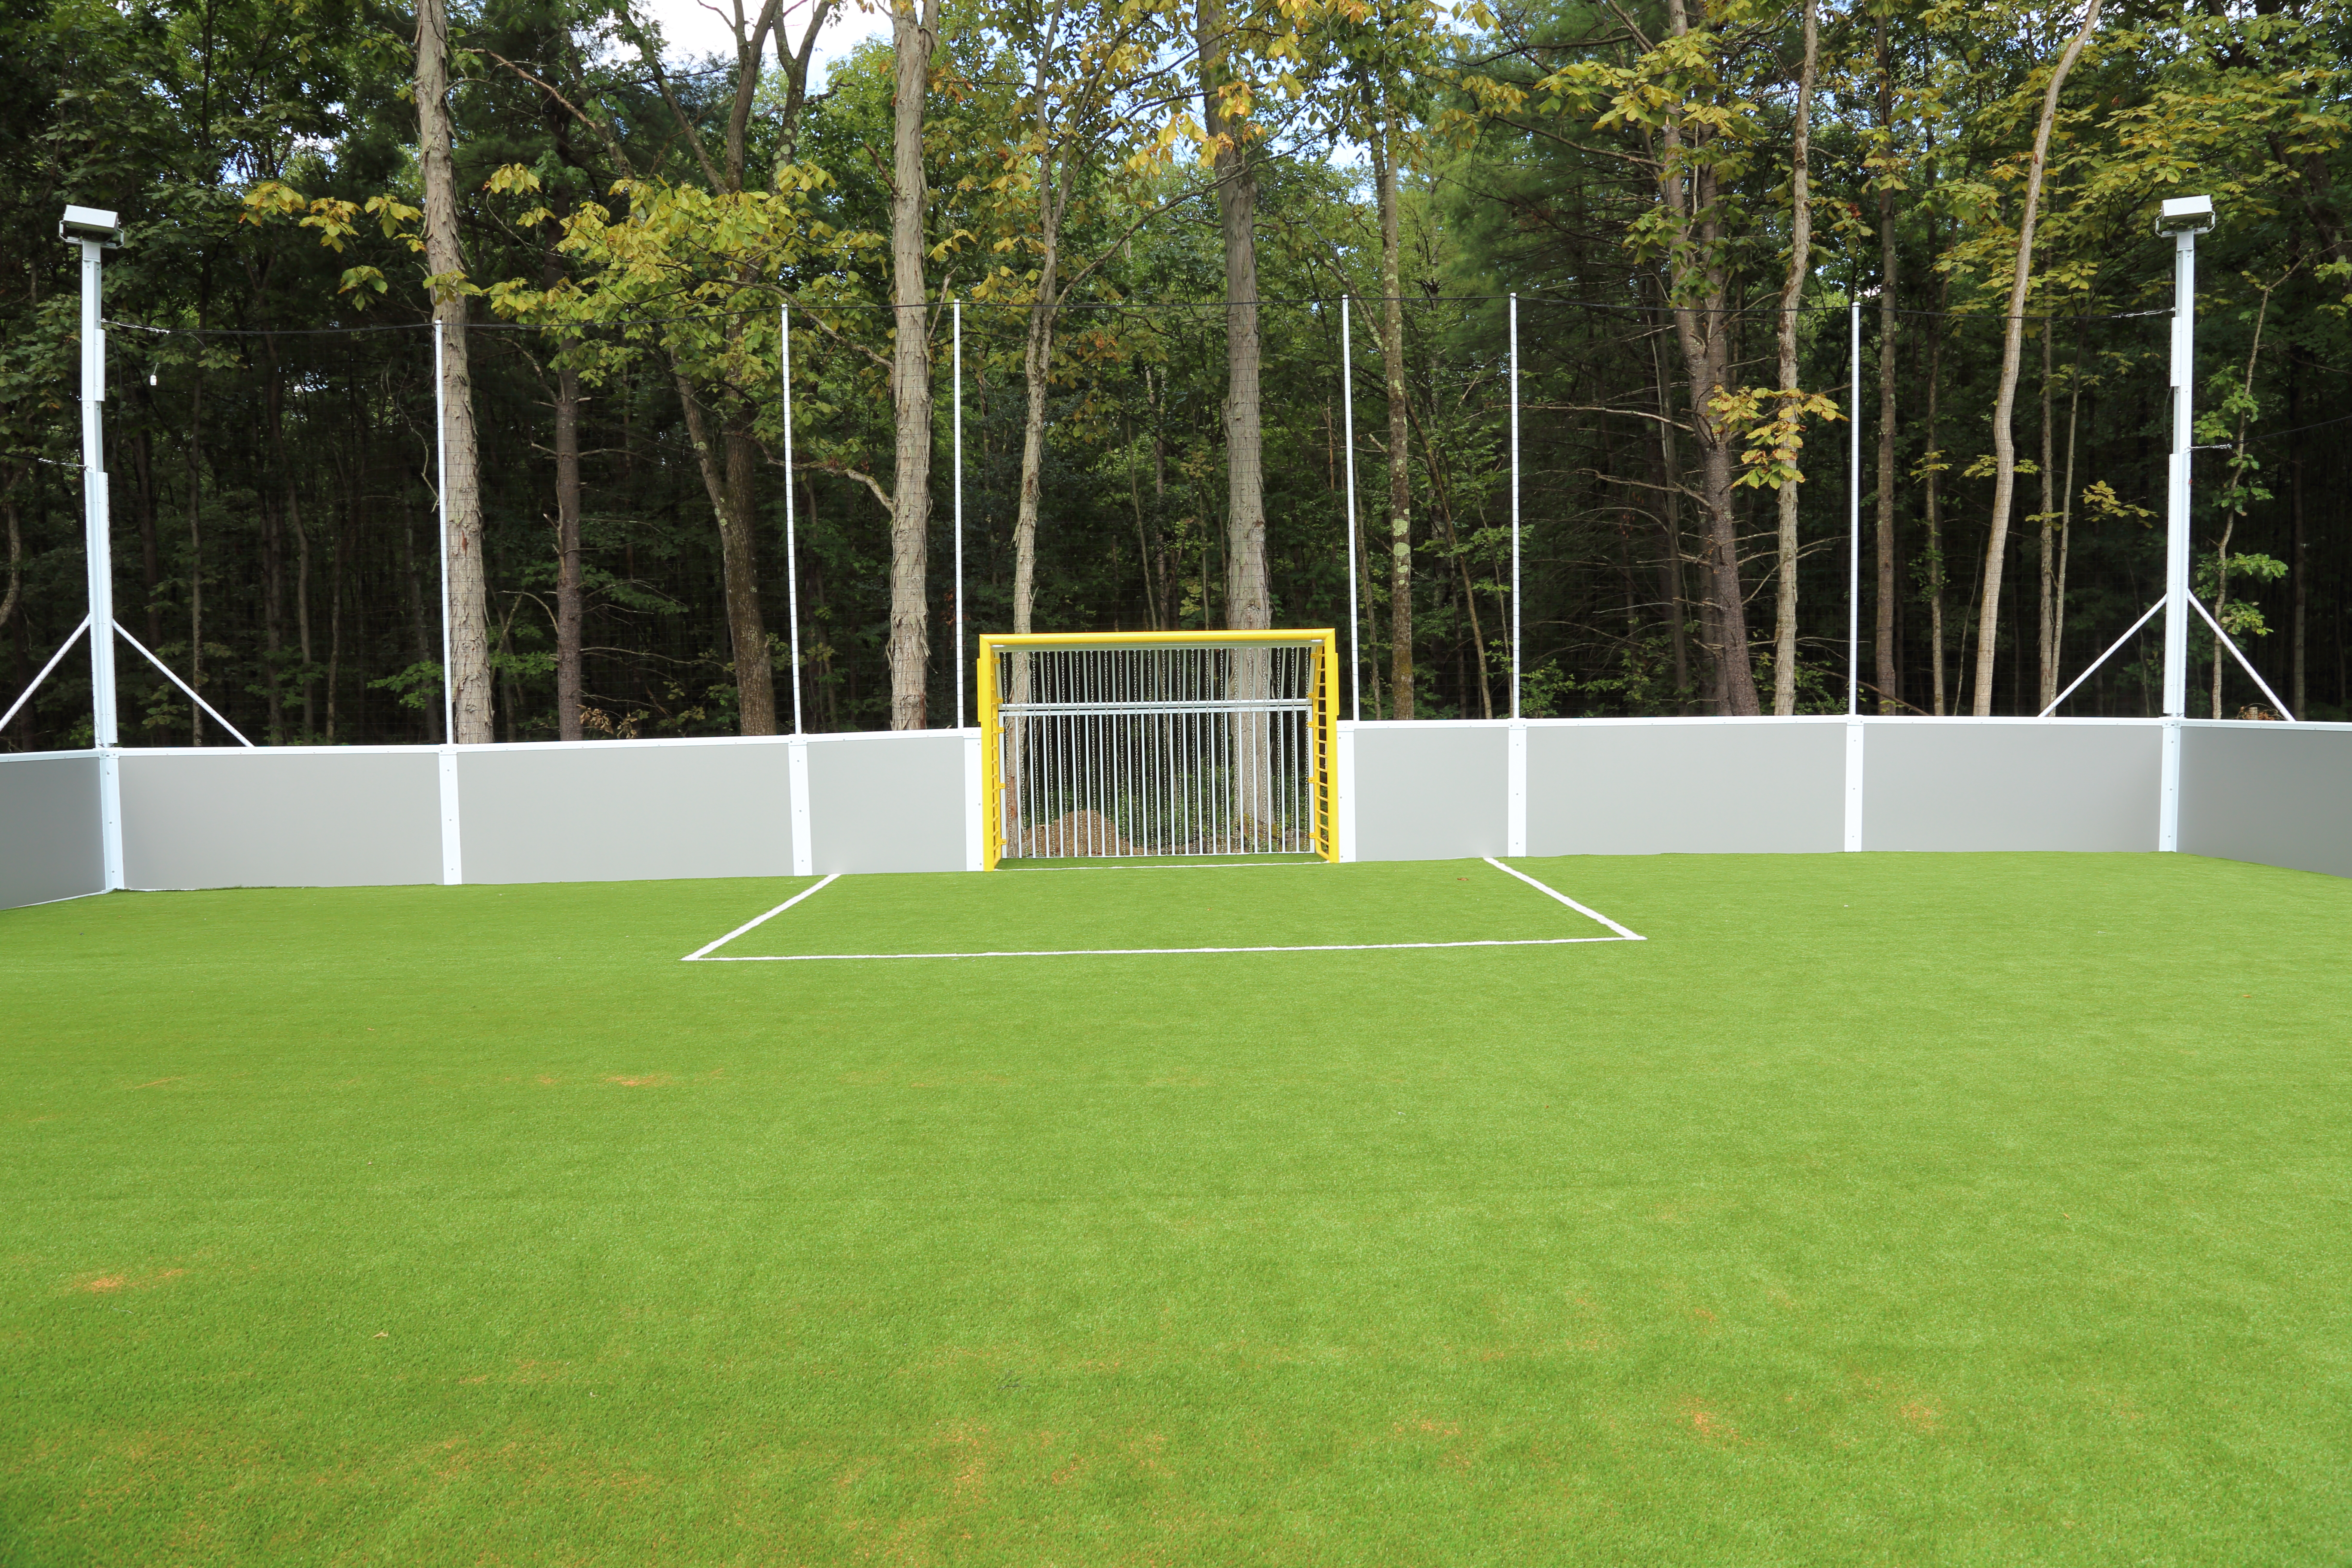 Trainers Turf-63 artificial turf,synthetic turf,artificial turf installation,how to install artificial turf,used artificial turf